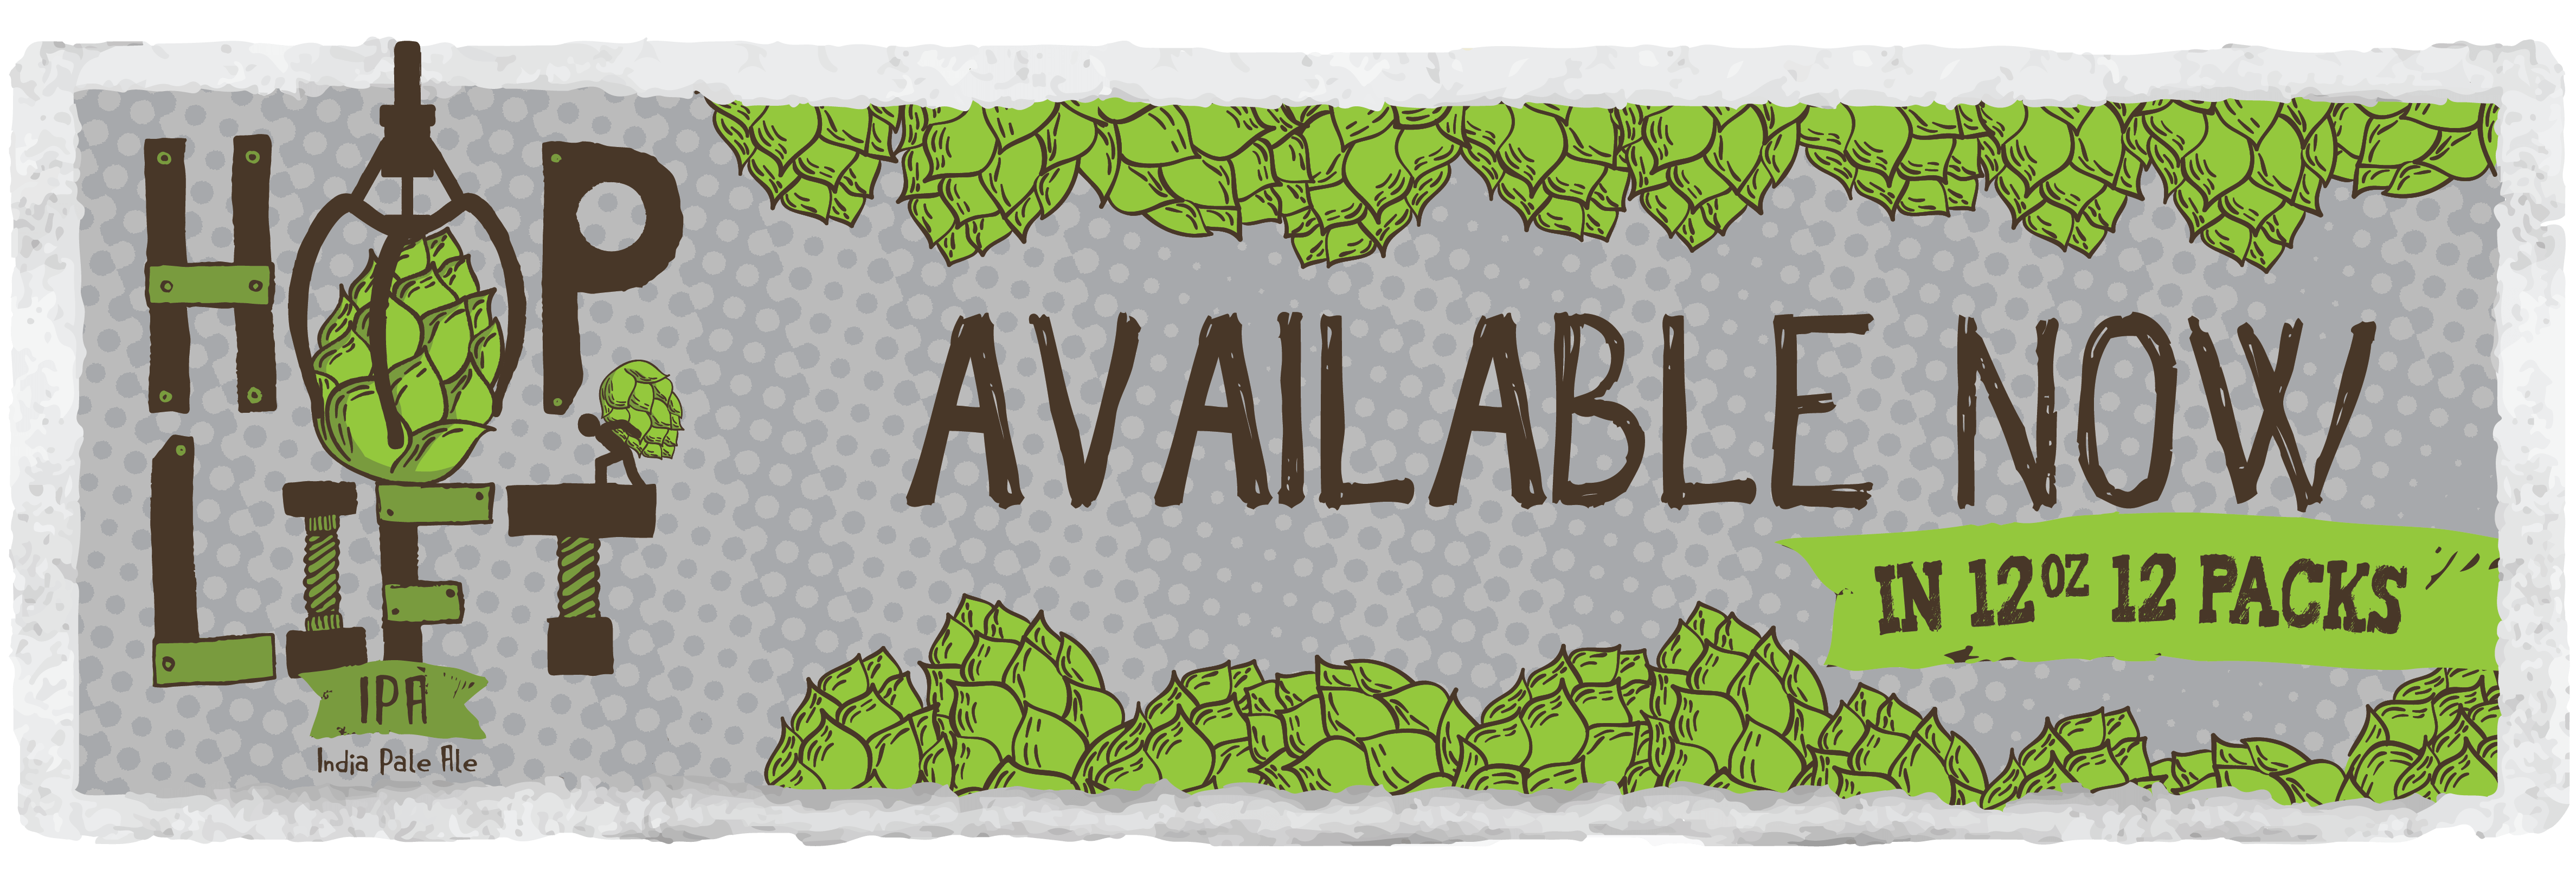 Hop Lift Available Now